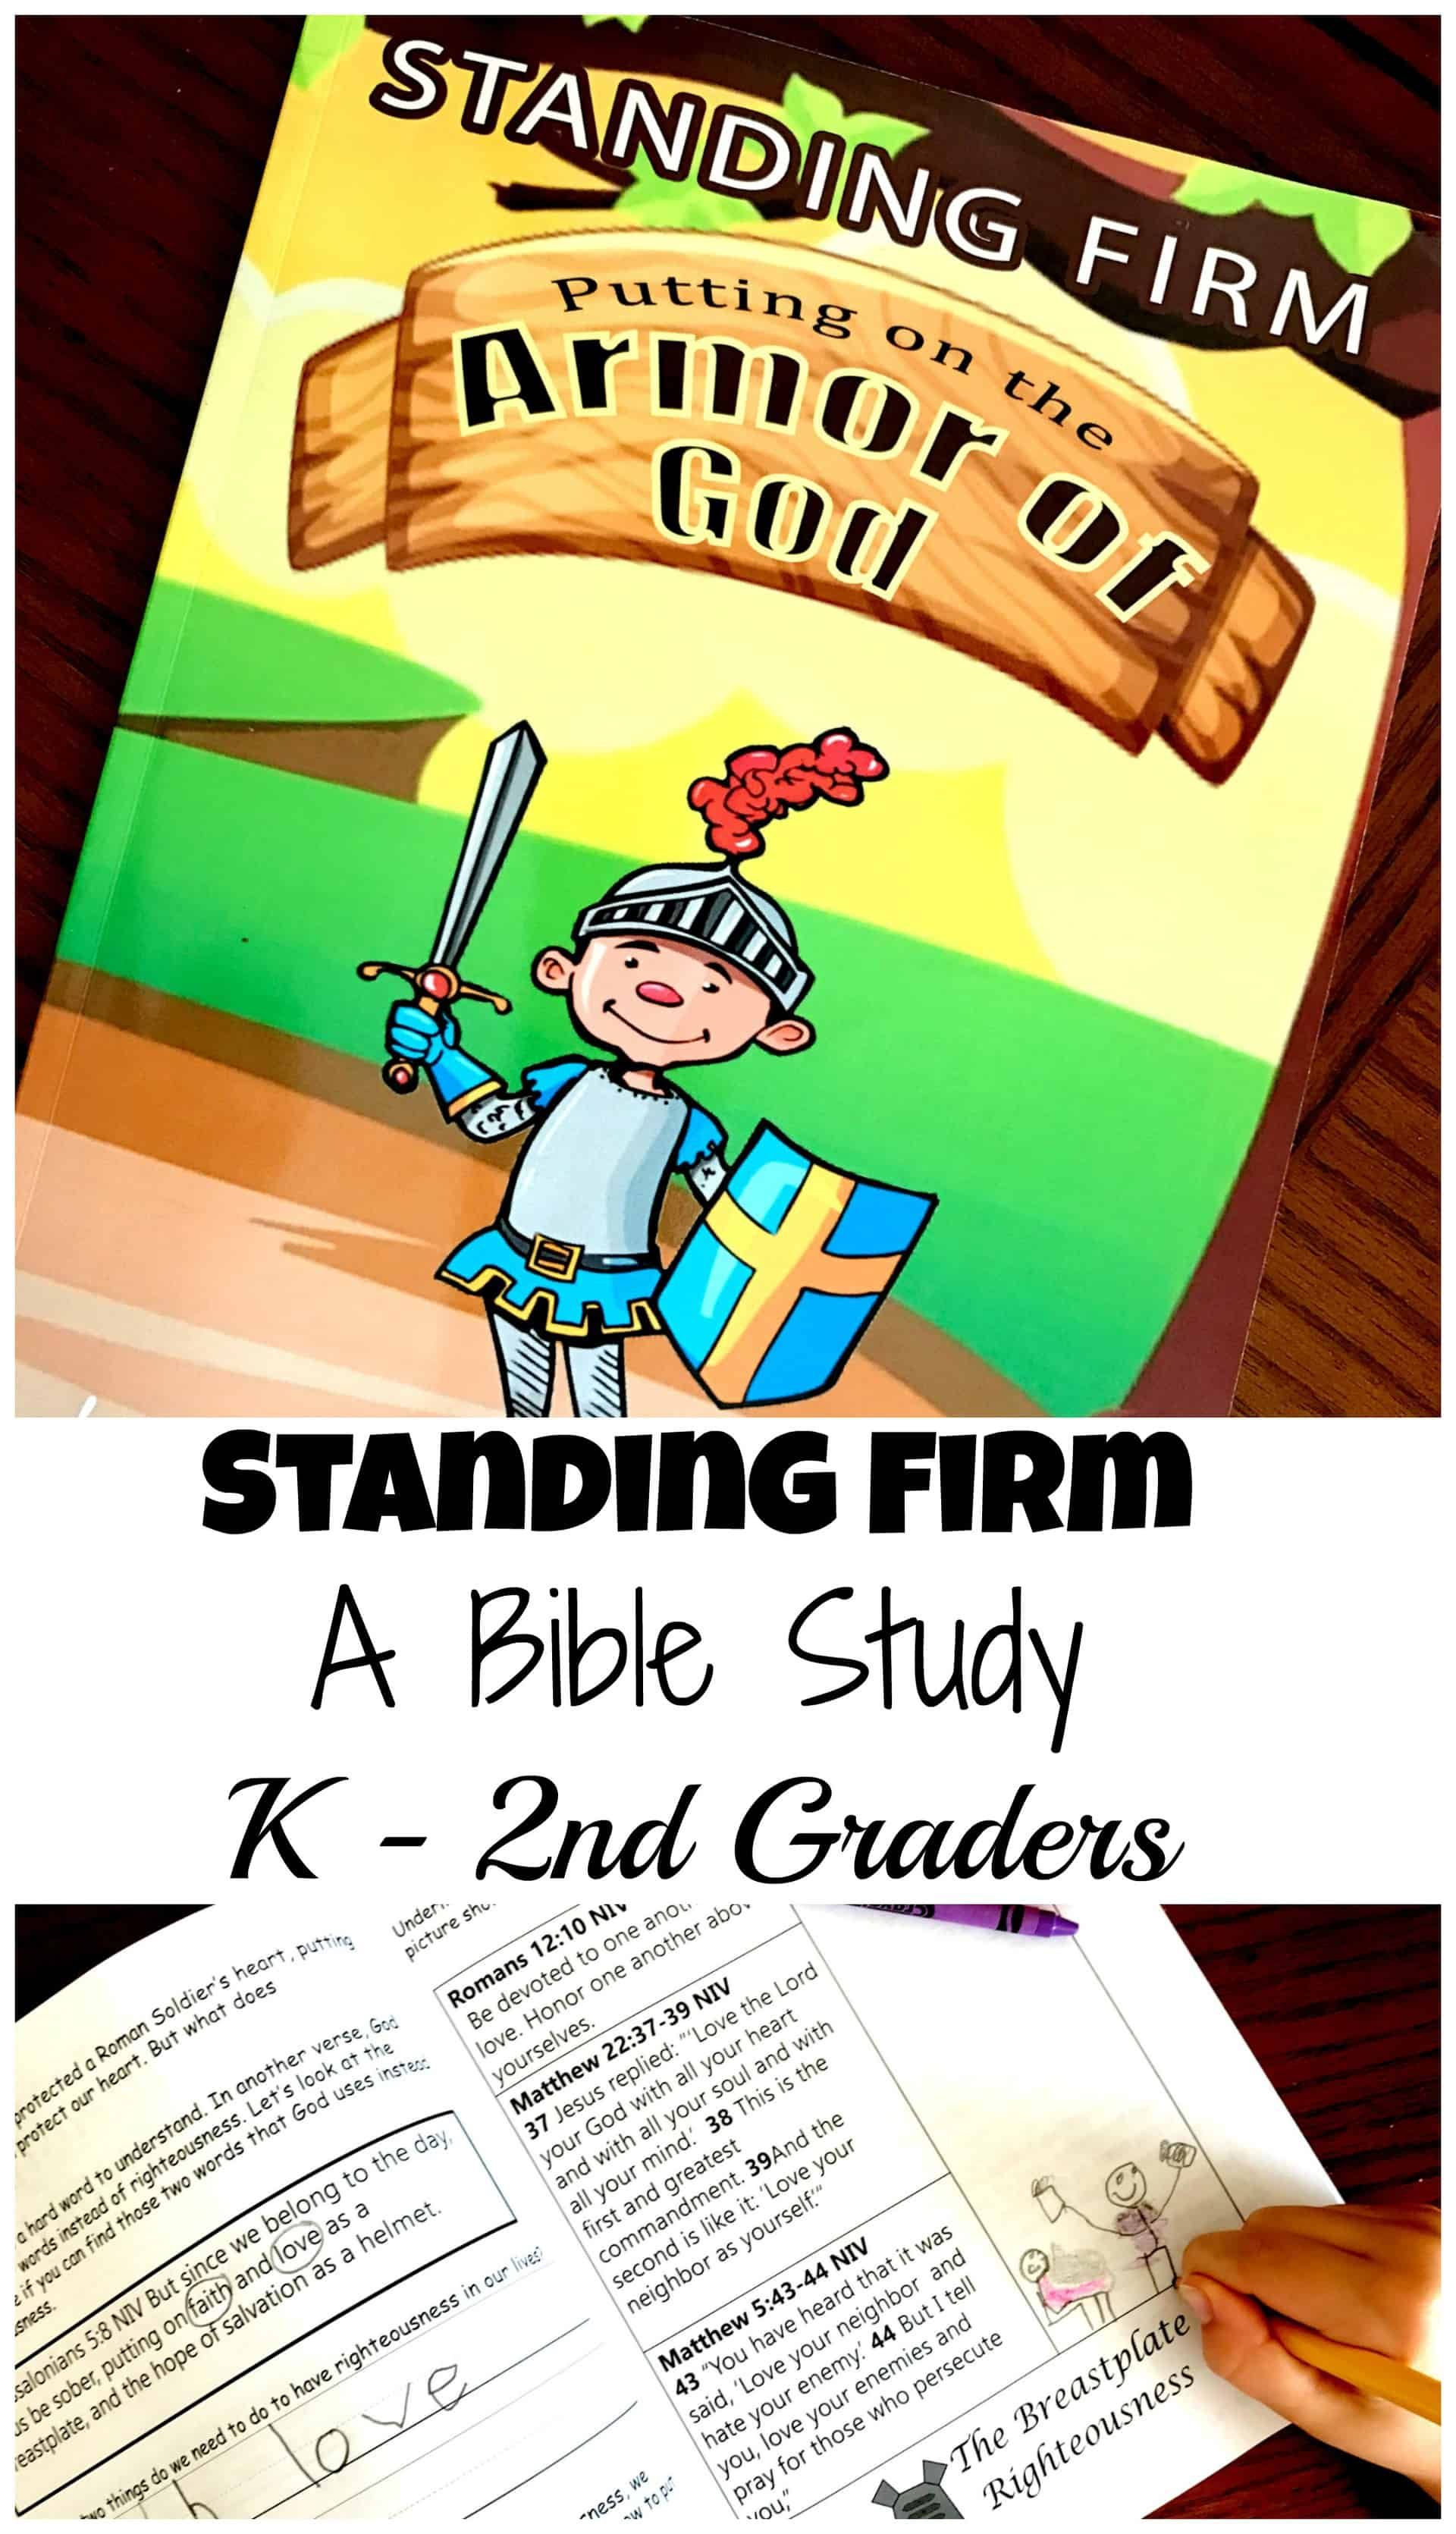 Bible Study About The Armor Of God For K 2nd Graders